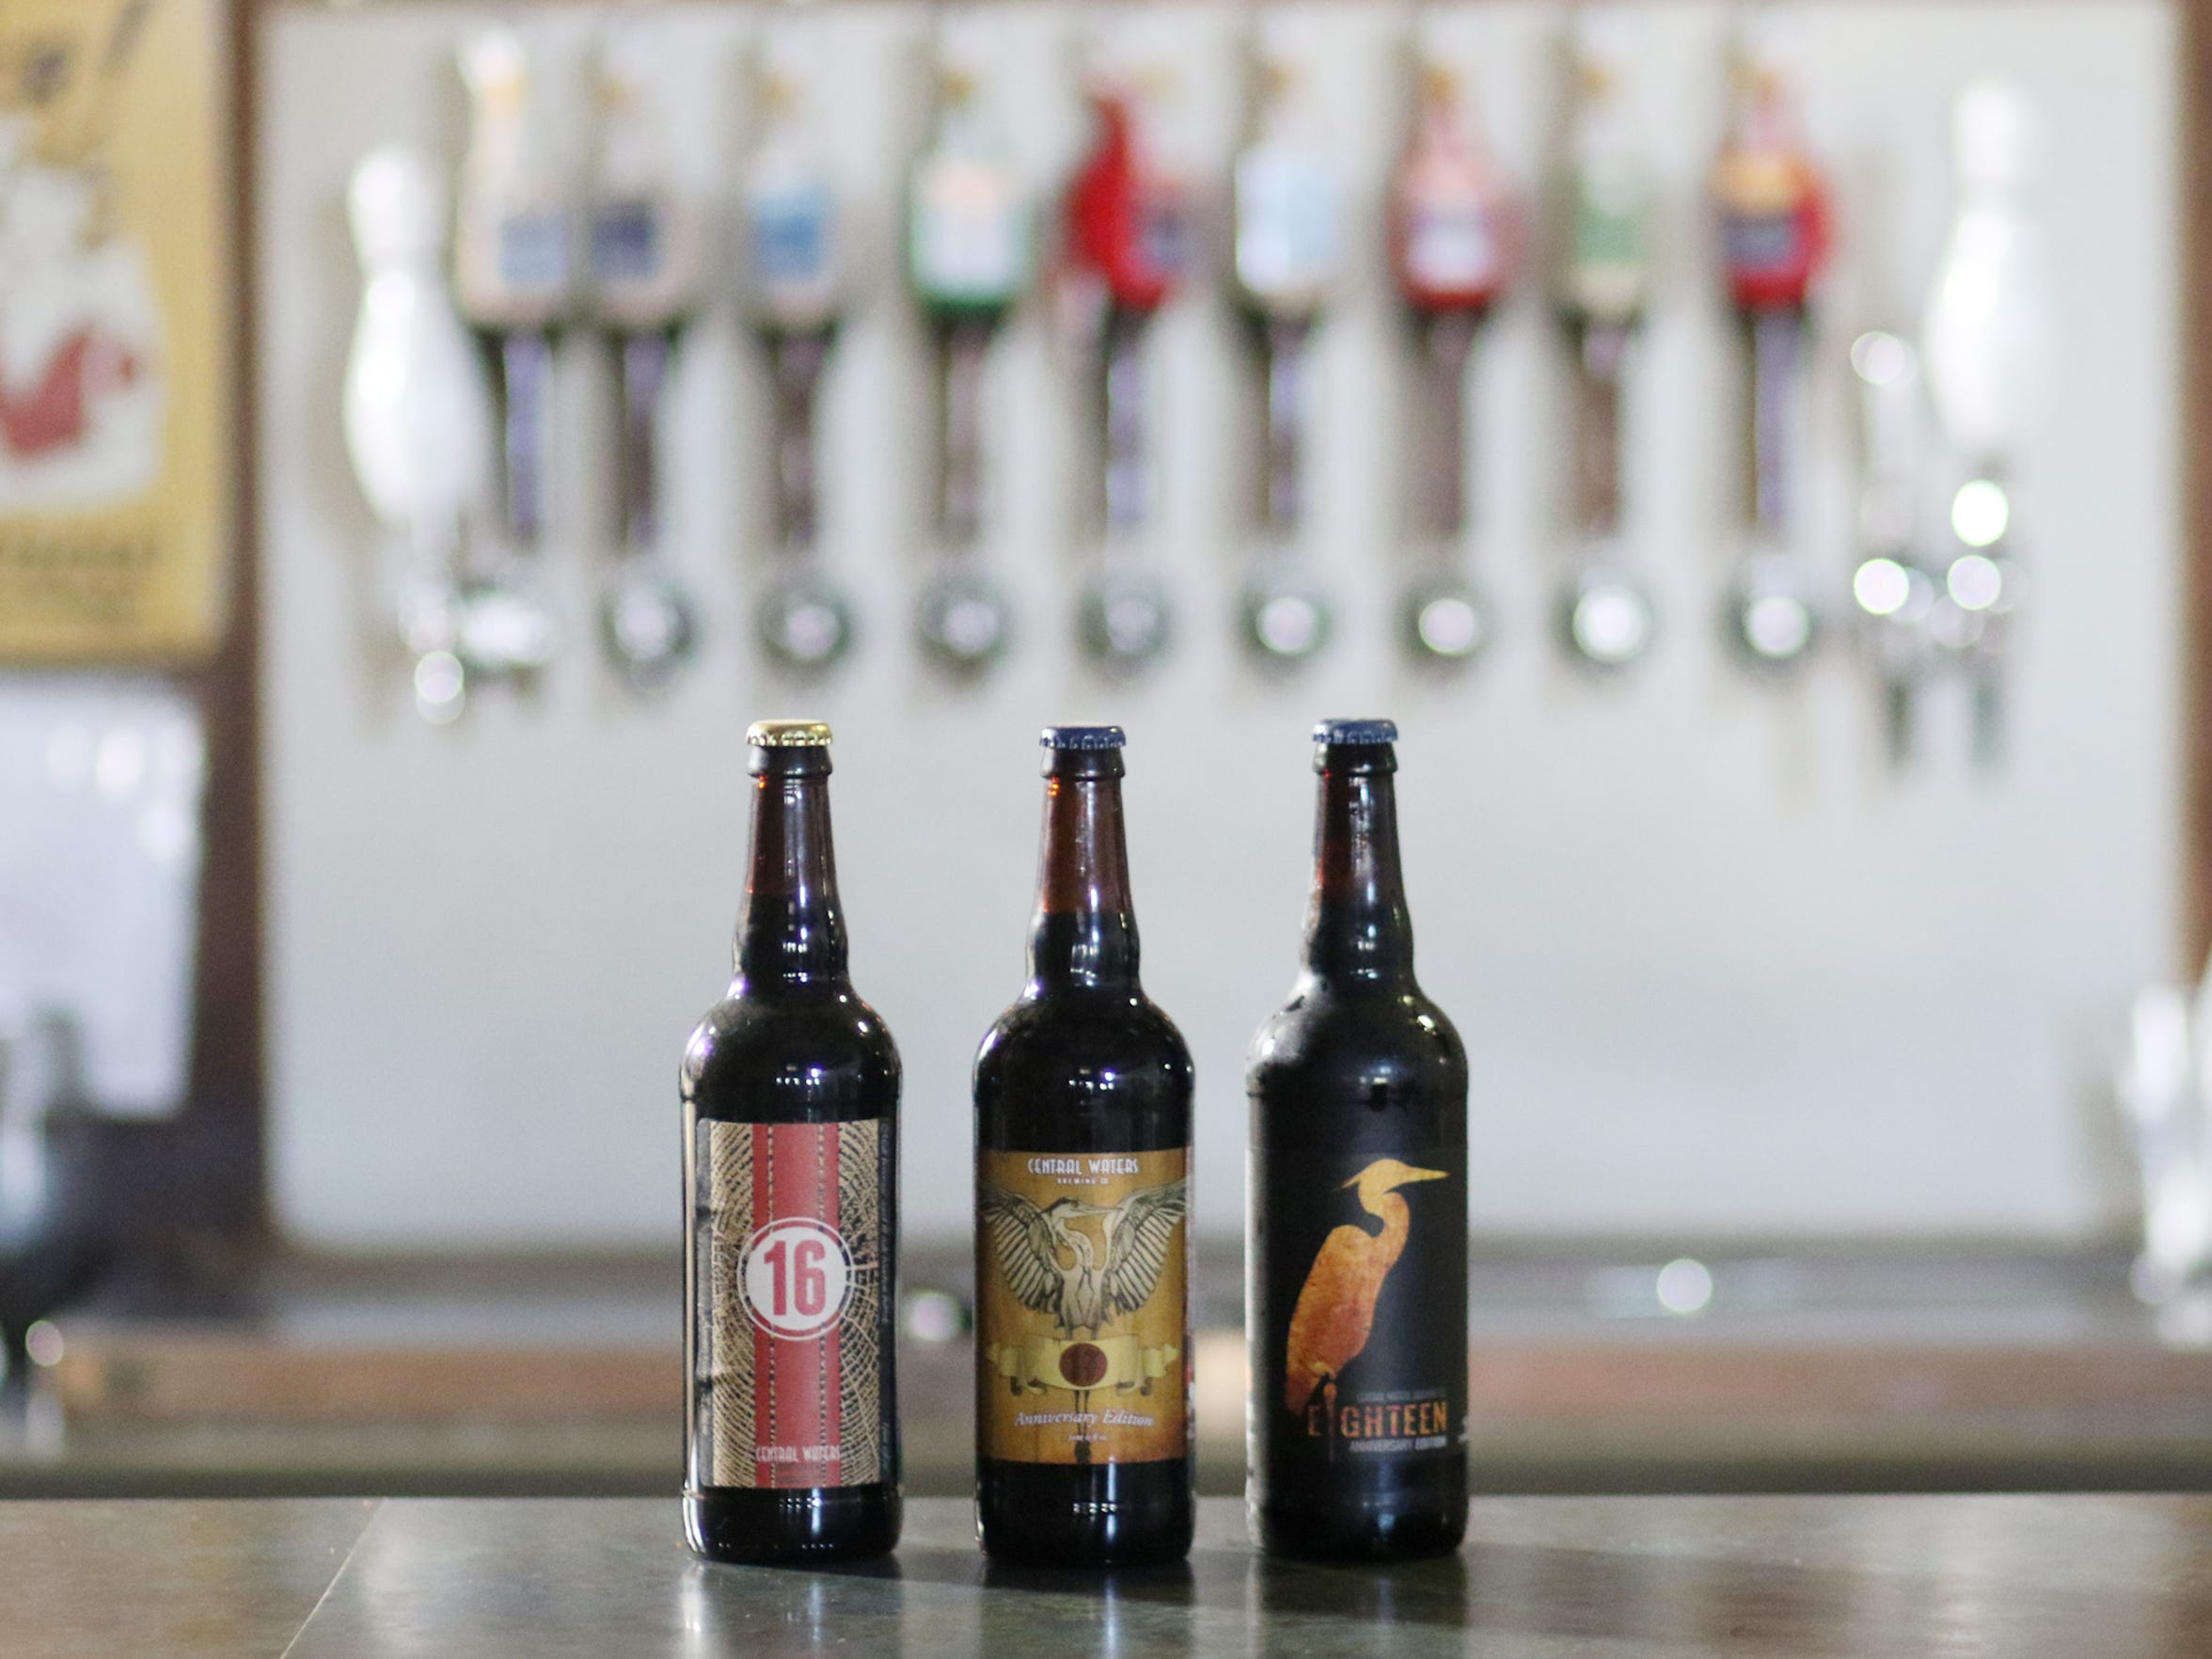 Considering the cost ($15 for a bomber is common) and high alcohol by volume content of barrel aged beers, taking time to sip and enjoy is advised.